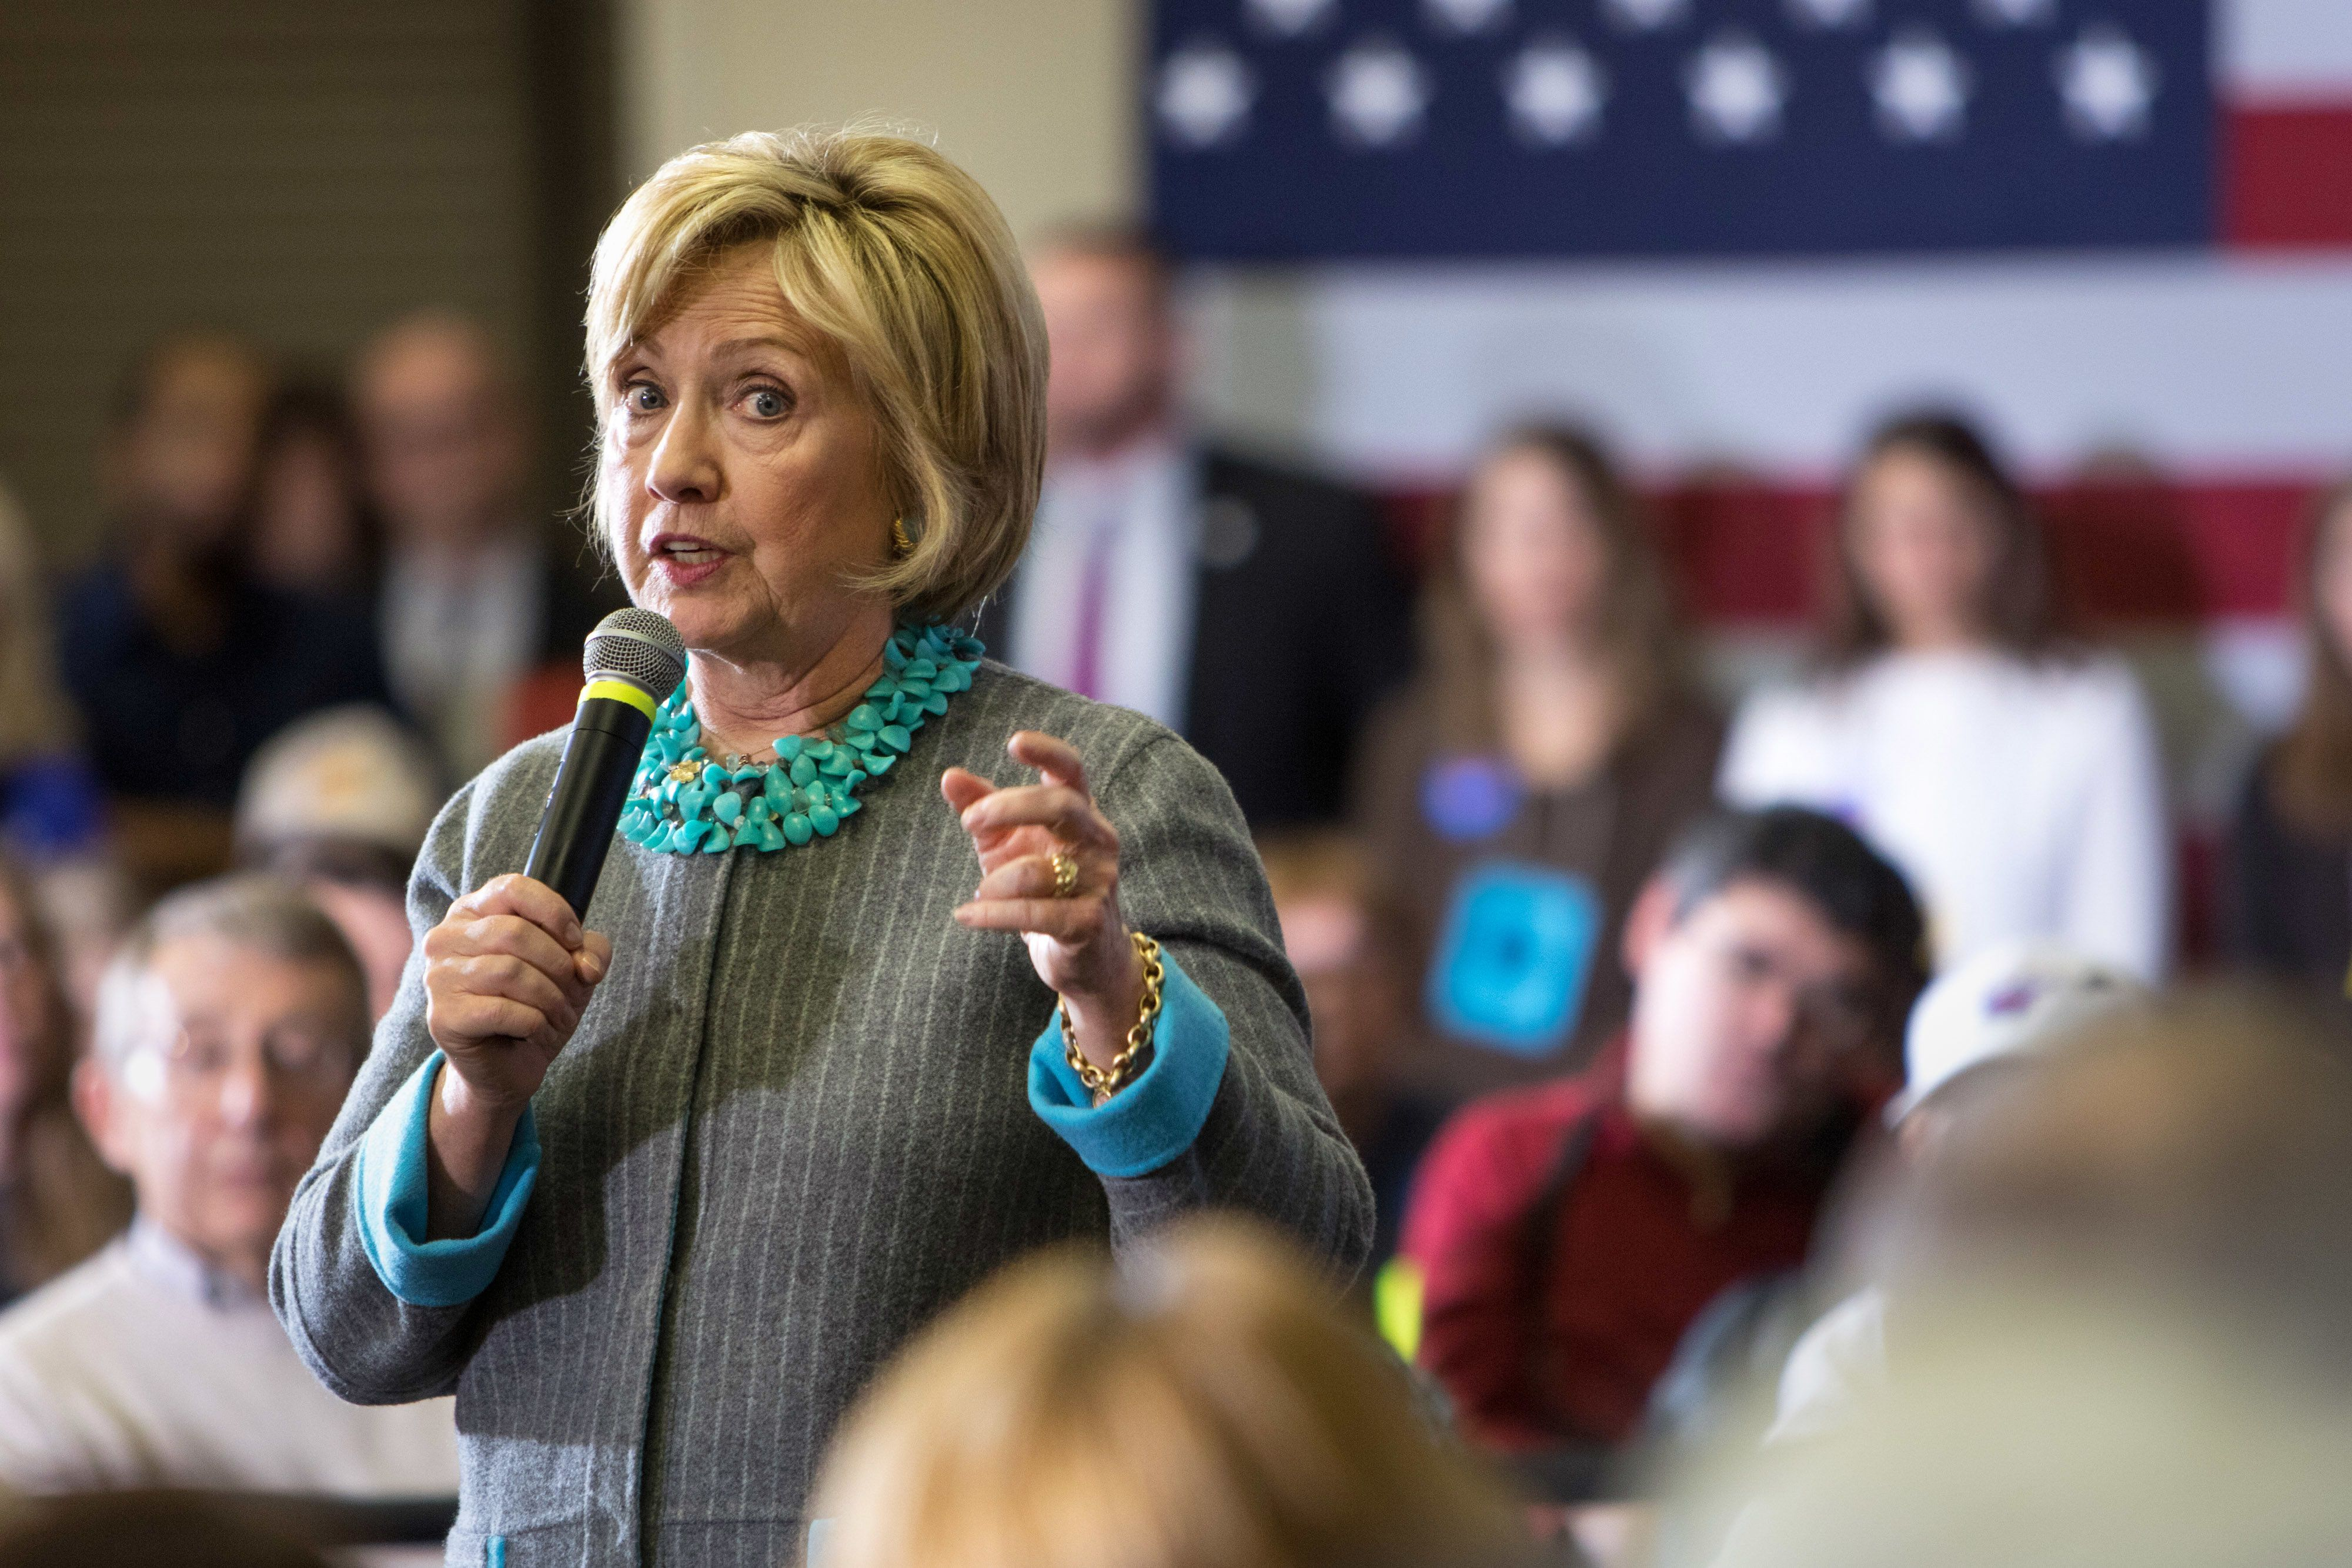 Hillary Clinton, former Secretary of State and 2016 Democratic presidential candidate, speaks during a town hall meeting in Waterloo, Iowa, U.S., on Wednesday, Dec. 9, 2015. Clinton will unveil proposals to deter U.S. companies from shifting profits overseas, including an 'exit tax' to penalize companies that perform so-called tax inversions, a campaign official said. Photographer: Scott Morgan/Bloomberg via Getty Images